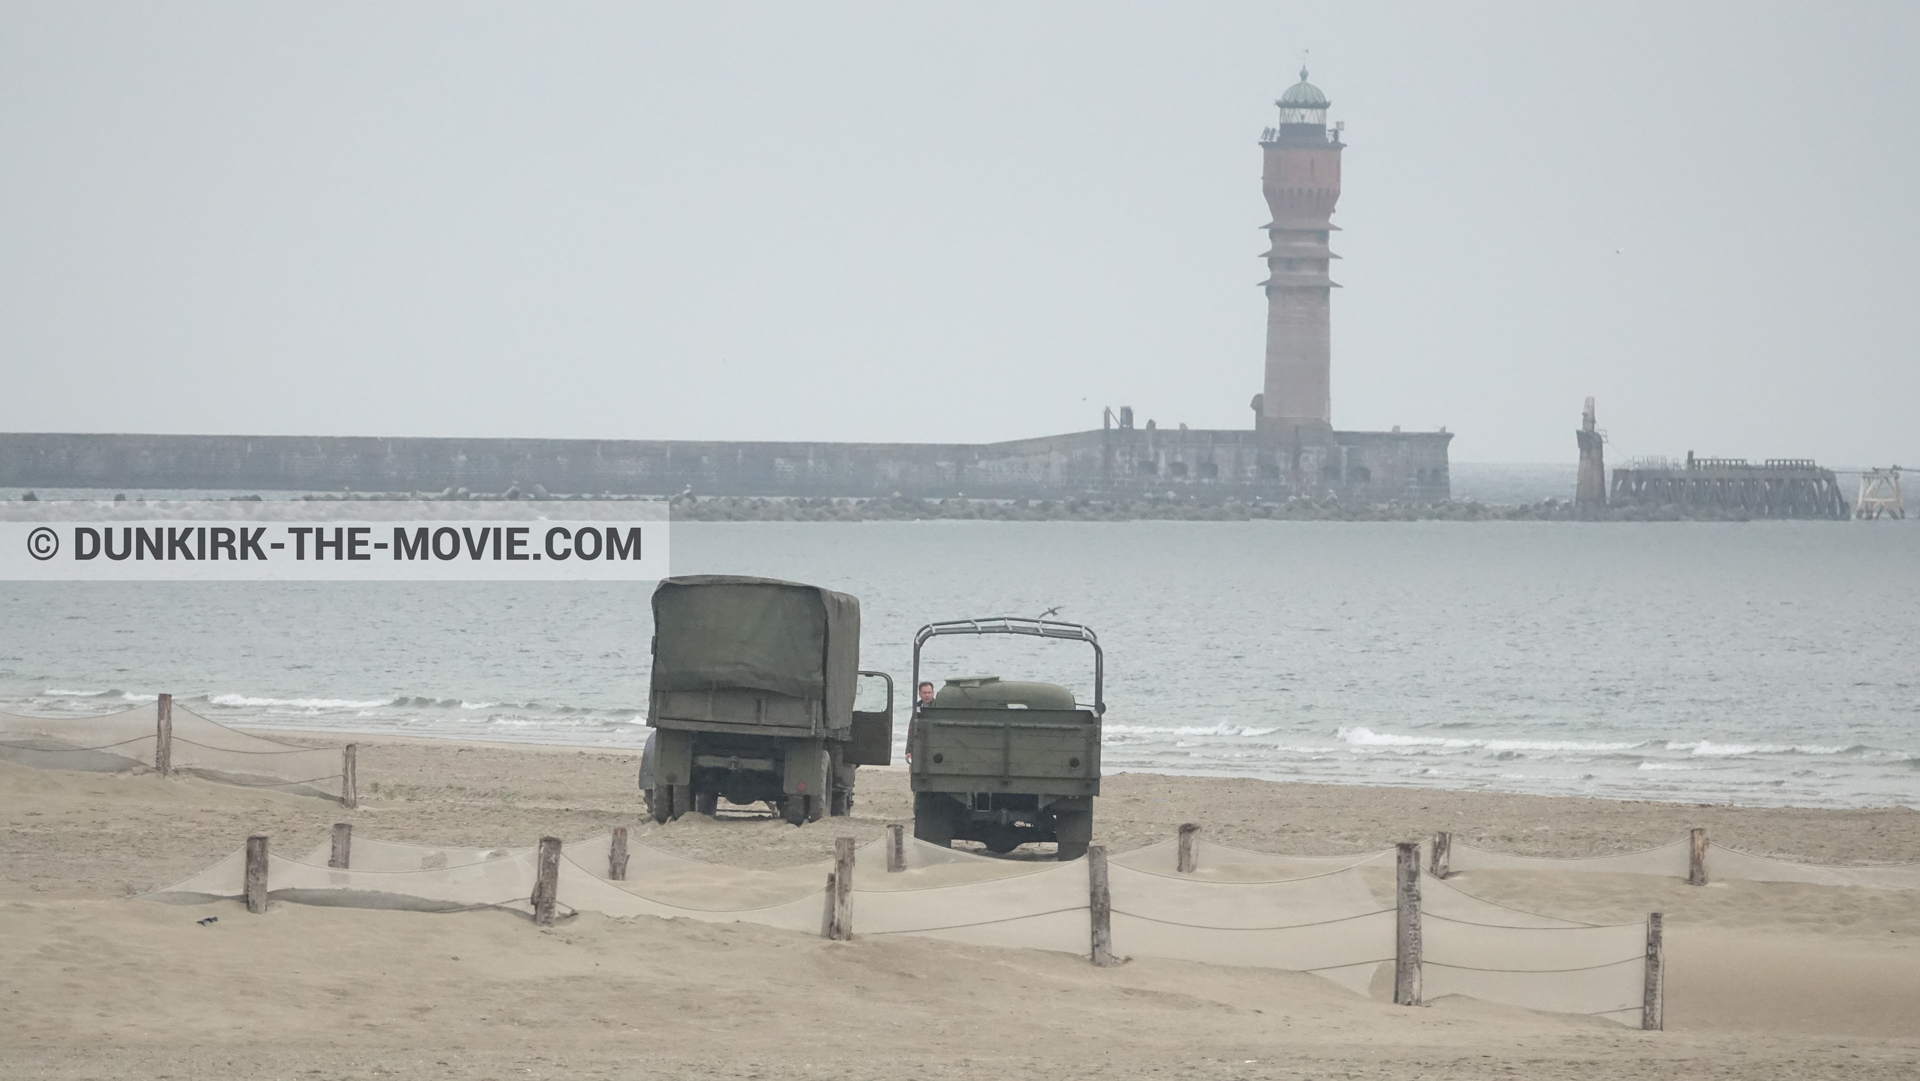 Picture with truck, St Pol sur Mer lighthouse, beach,  from behind the scene of the Dunkirk movie by Nolan